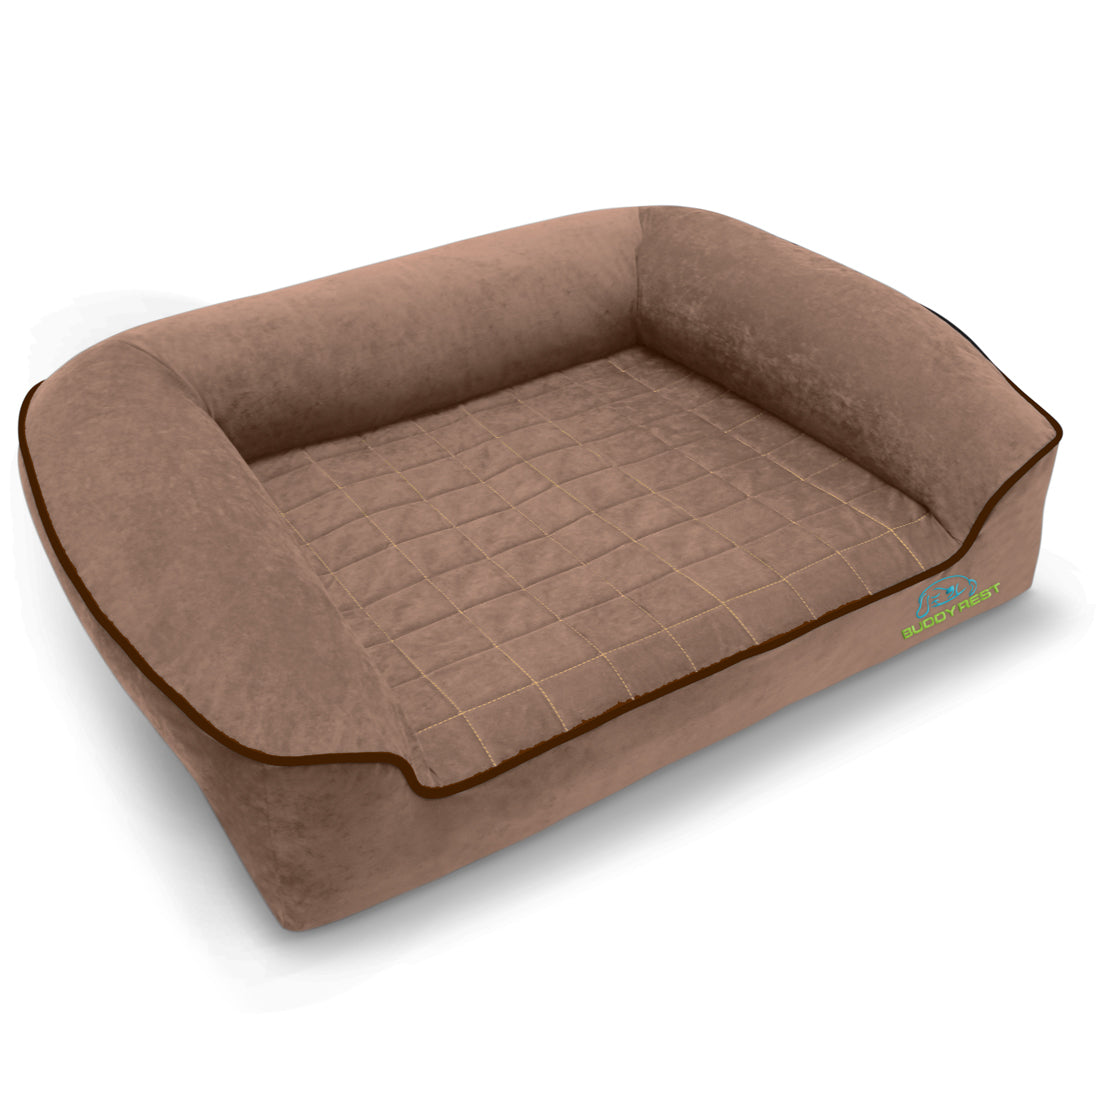 Romeo Orthopedic Bolster Dog Bed cover